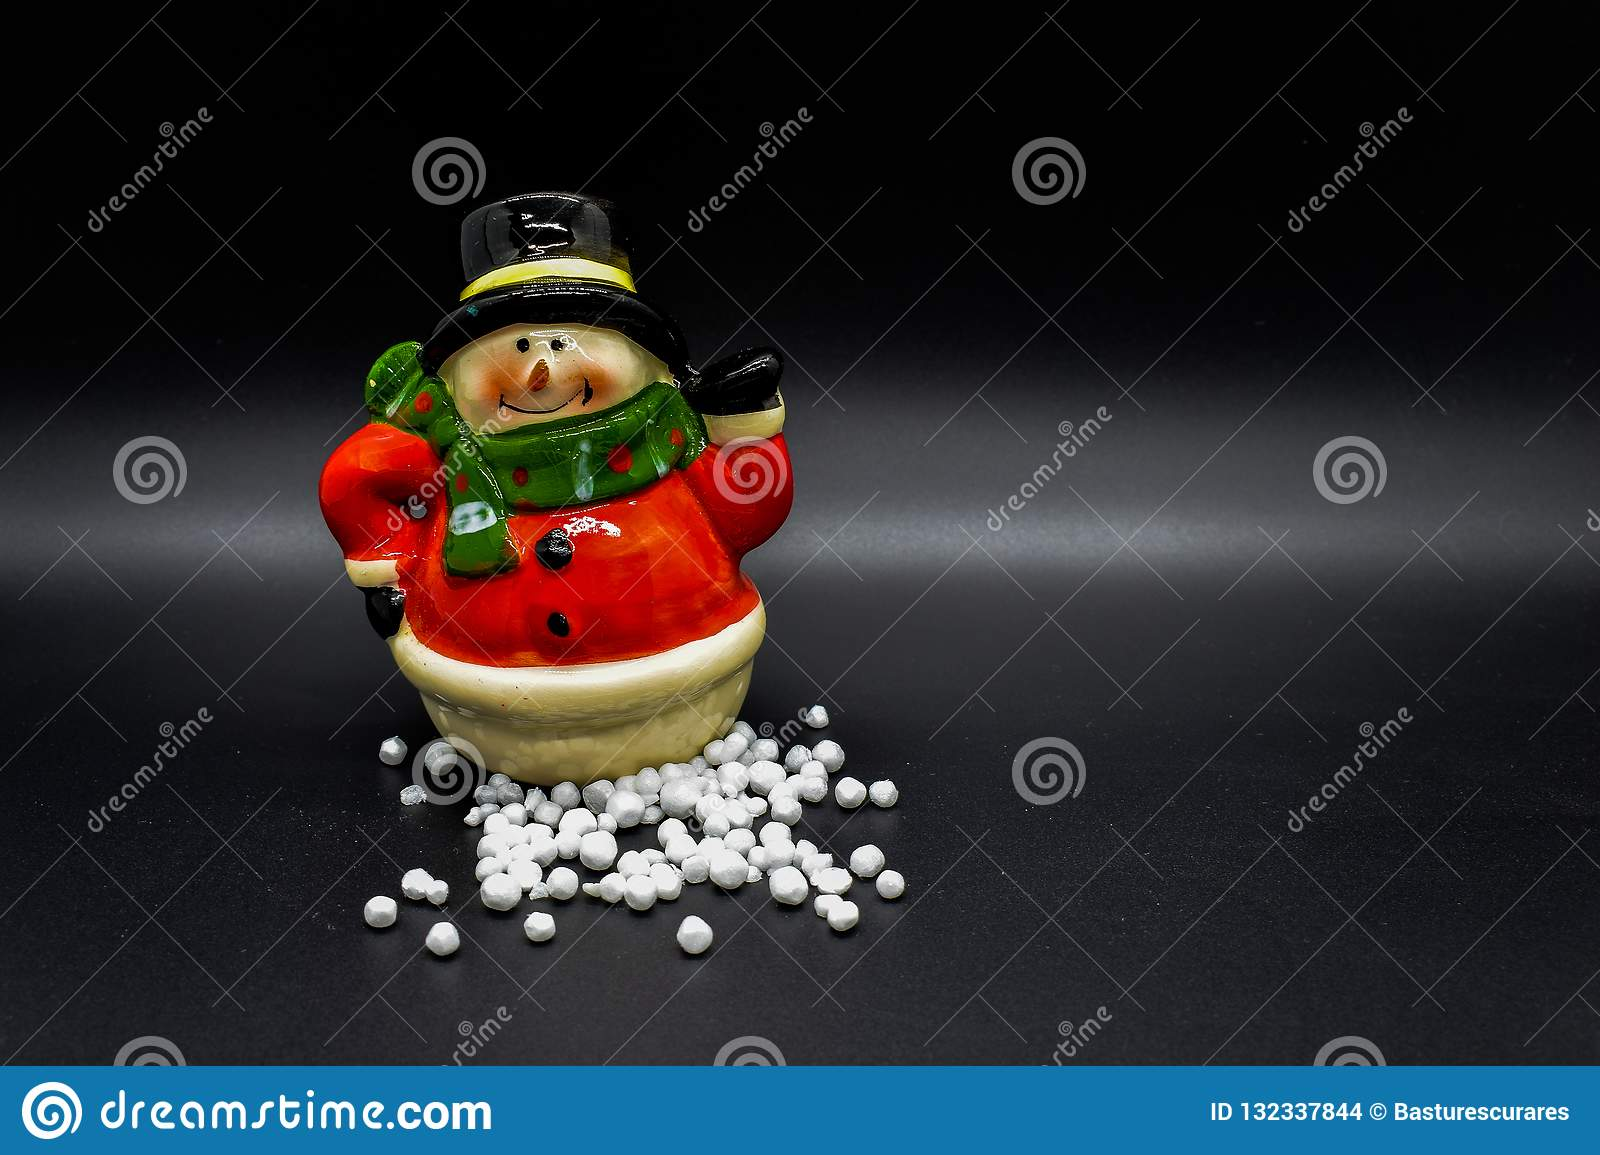 Handmade snowman figurine isolated on black background. Christmas decoration.